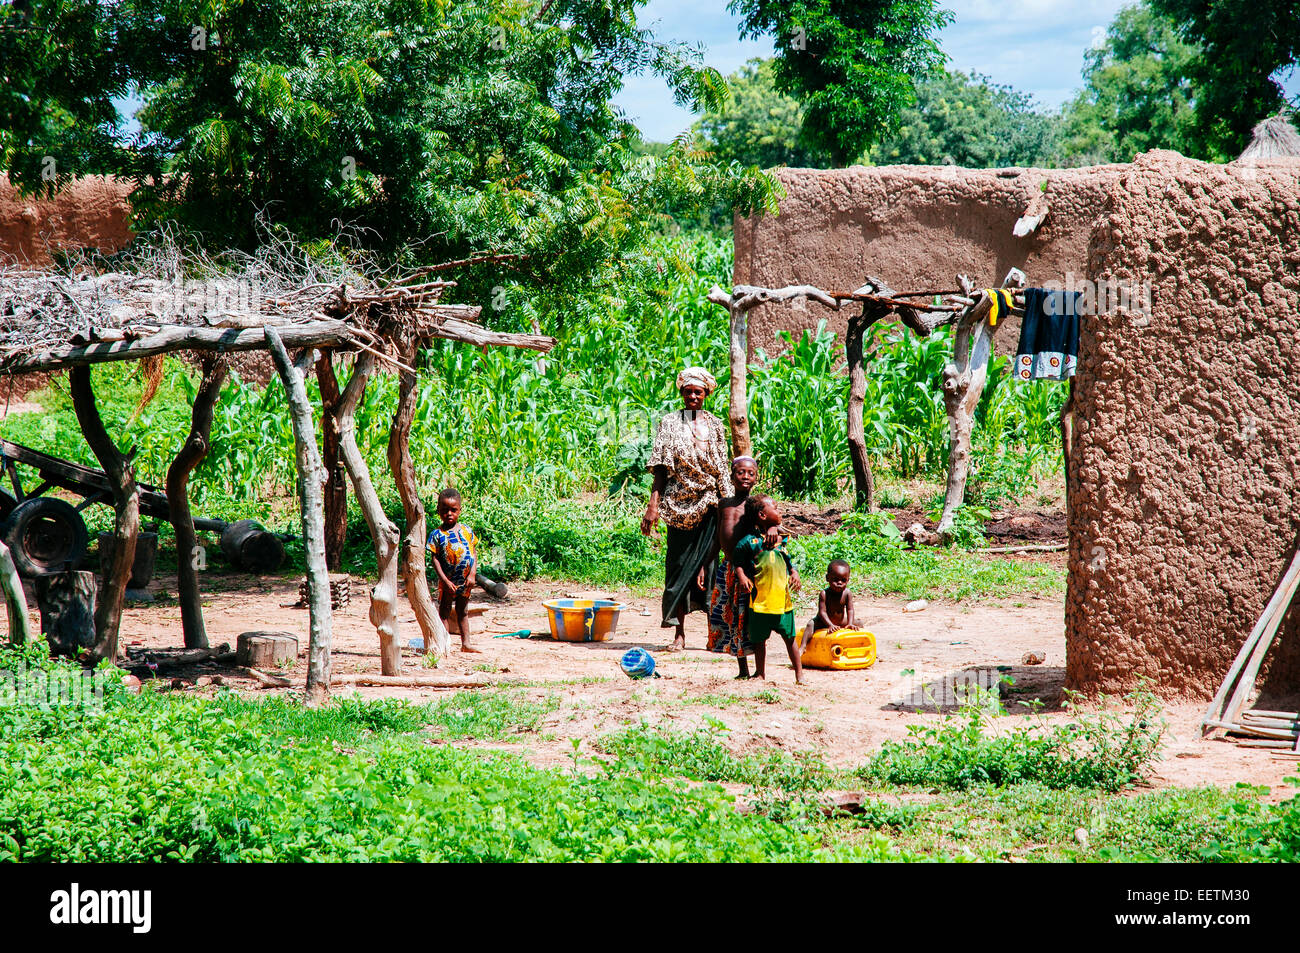 Woman and children in their mud brick huts village, Mali. - Stock Image